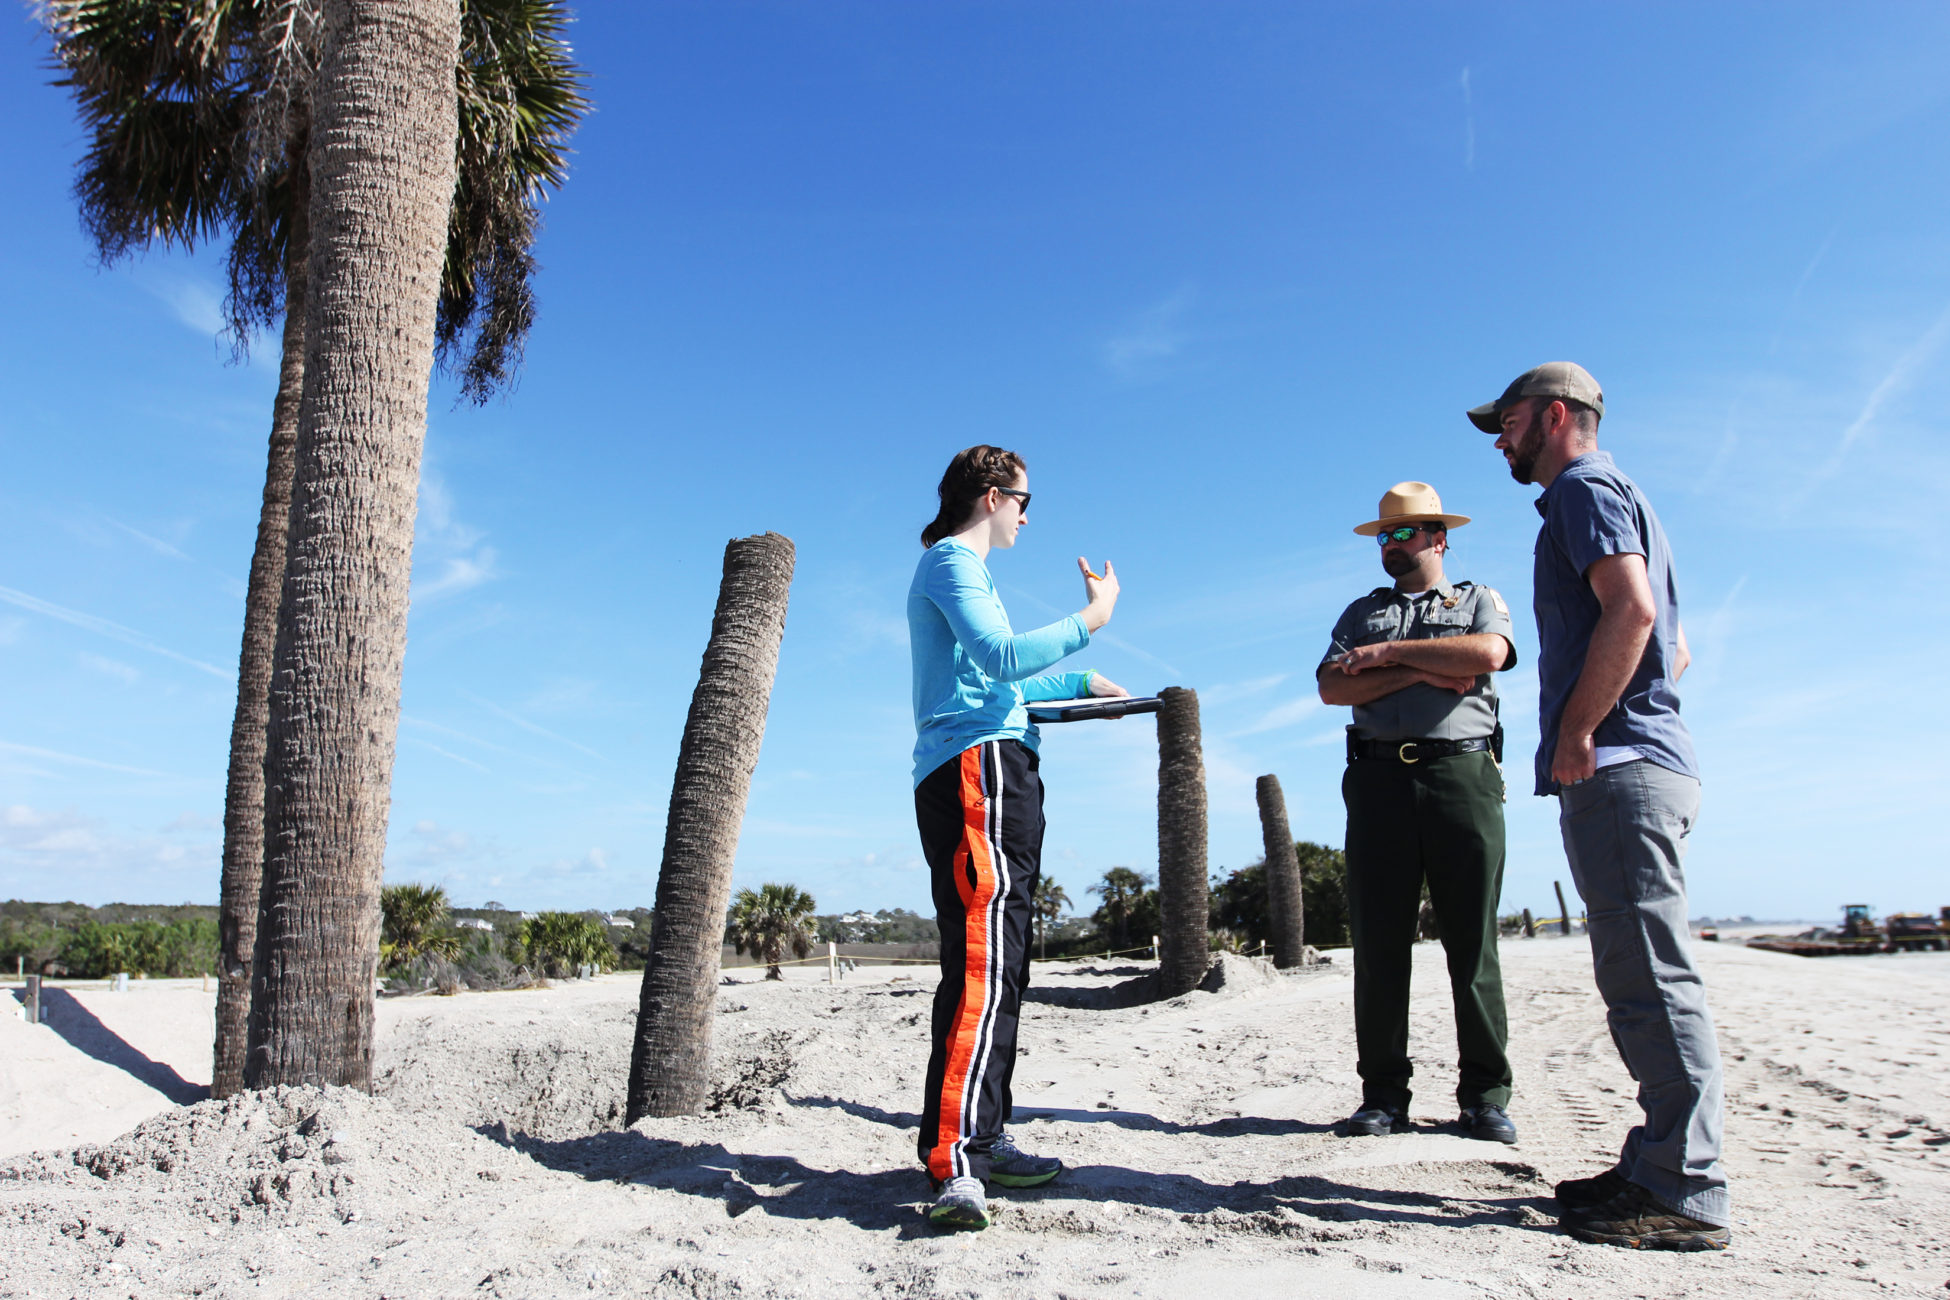 Elsemarie deVries and Joe Lemeris talk to an officer on the beach about their research